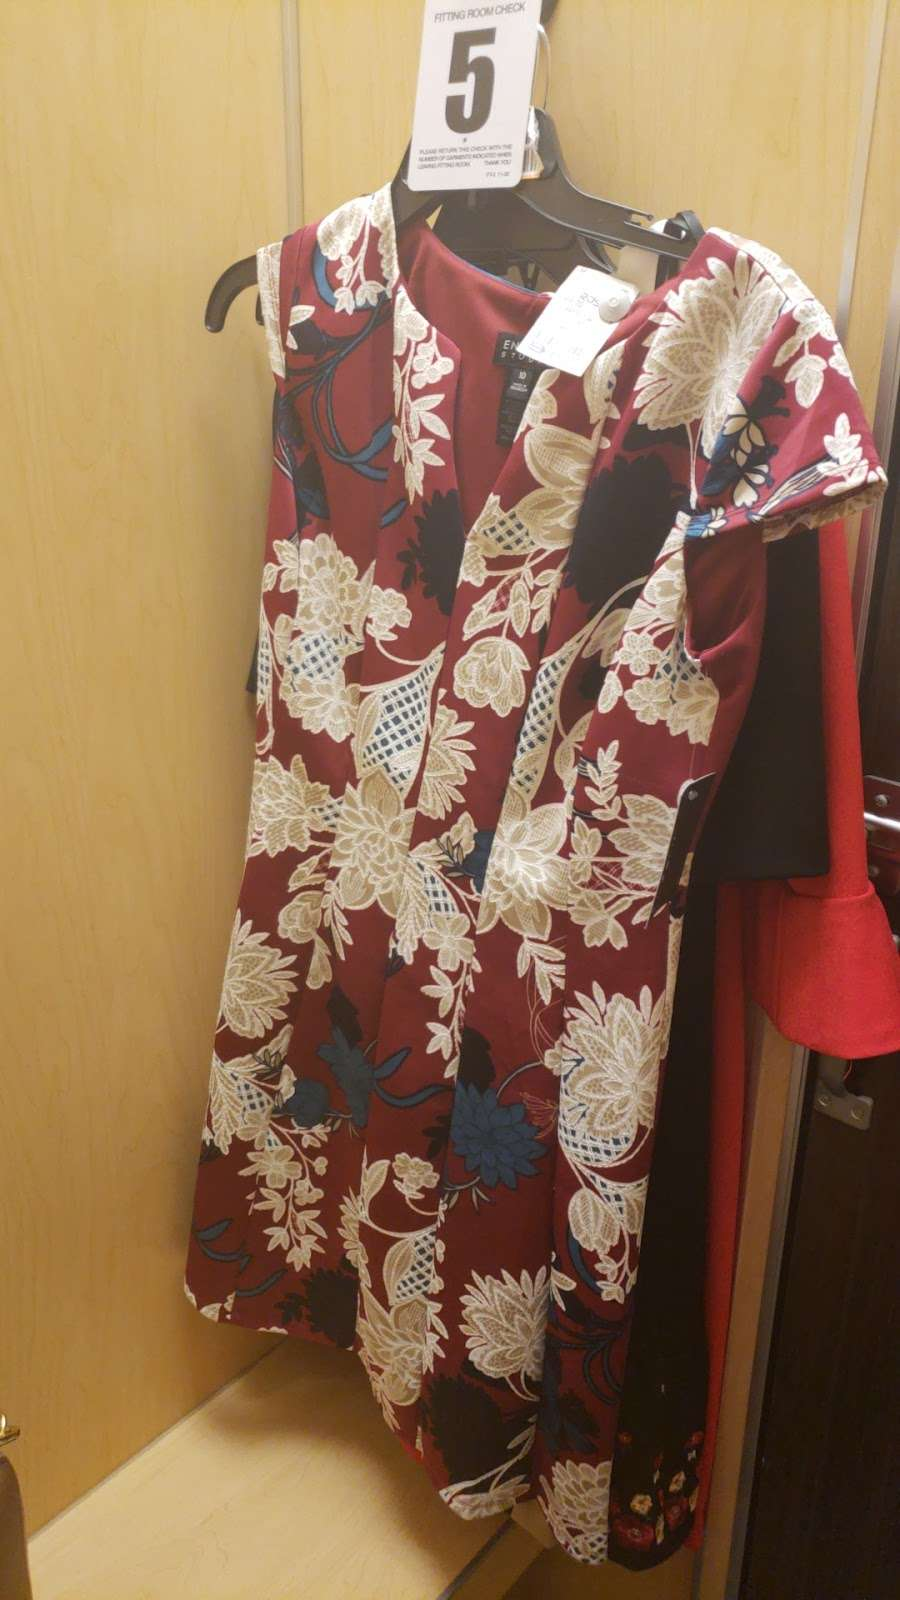 Ross Dress for Less - clothing store  | Photo 4 of 10 | Address: 2500 Gwynns Falls Pkwy, Baltimore, MD 21216, USA | Phone: (410) 225-9780